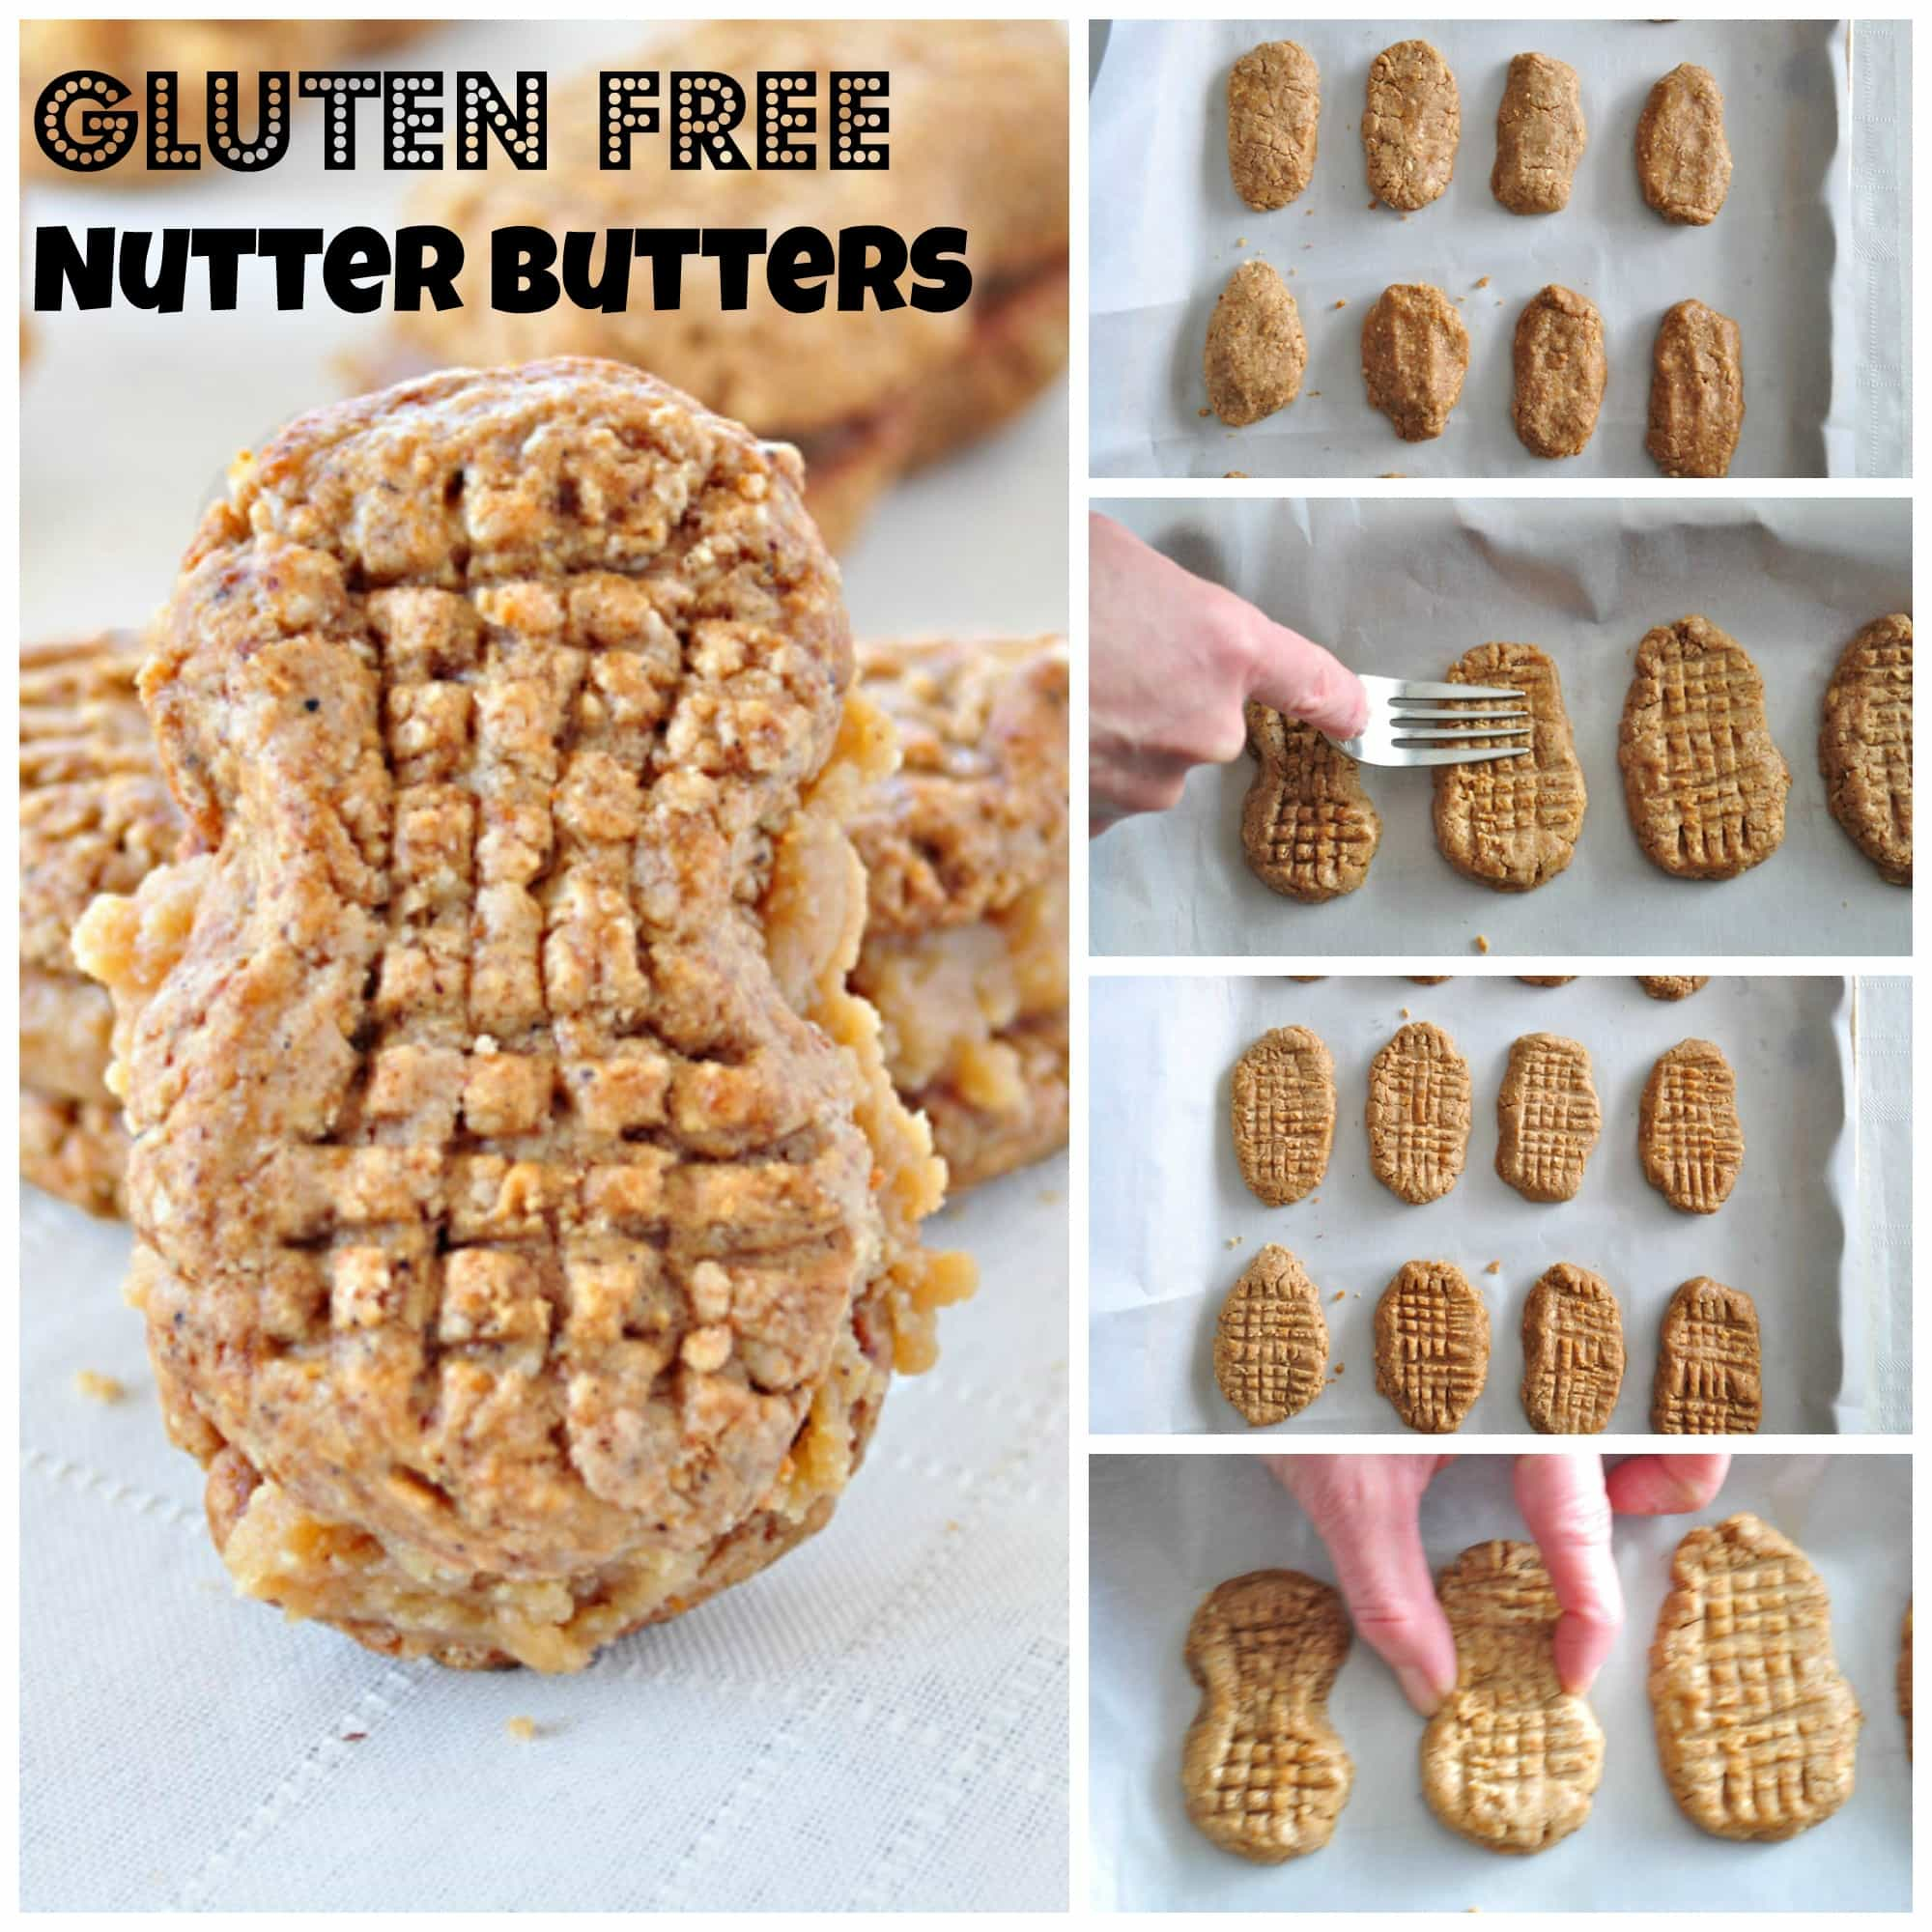 Gluten Free Homemade Nutter Butters - My Whole Food Life